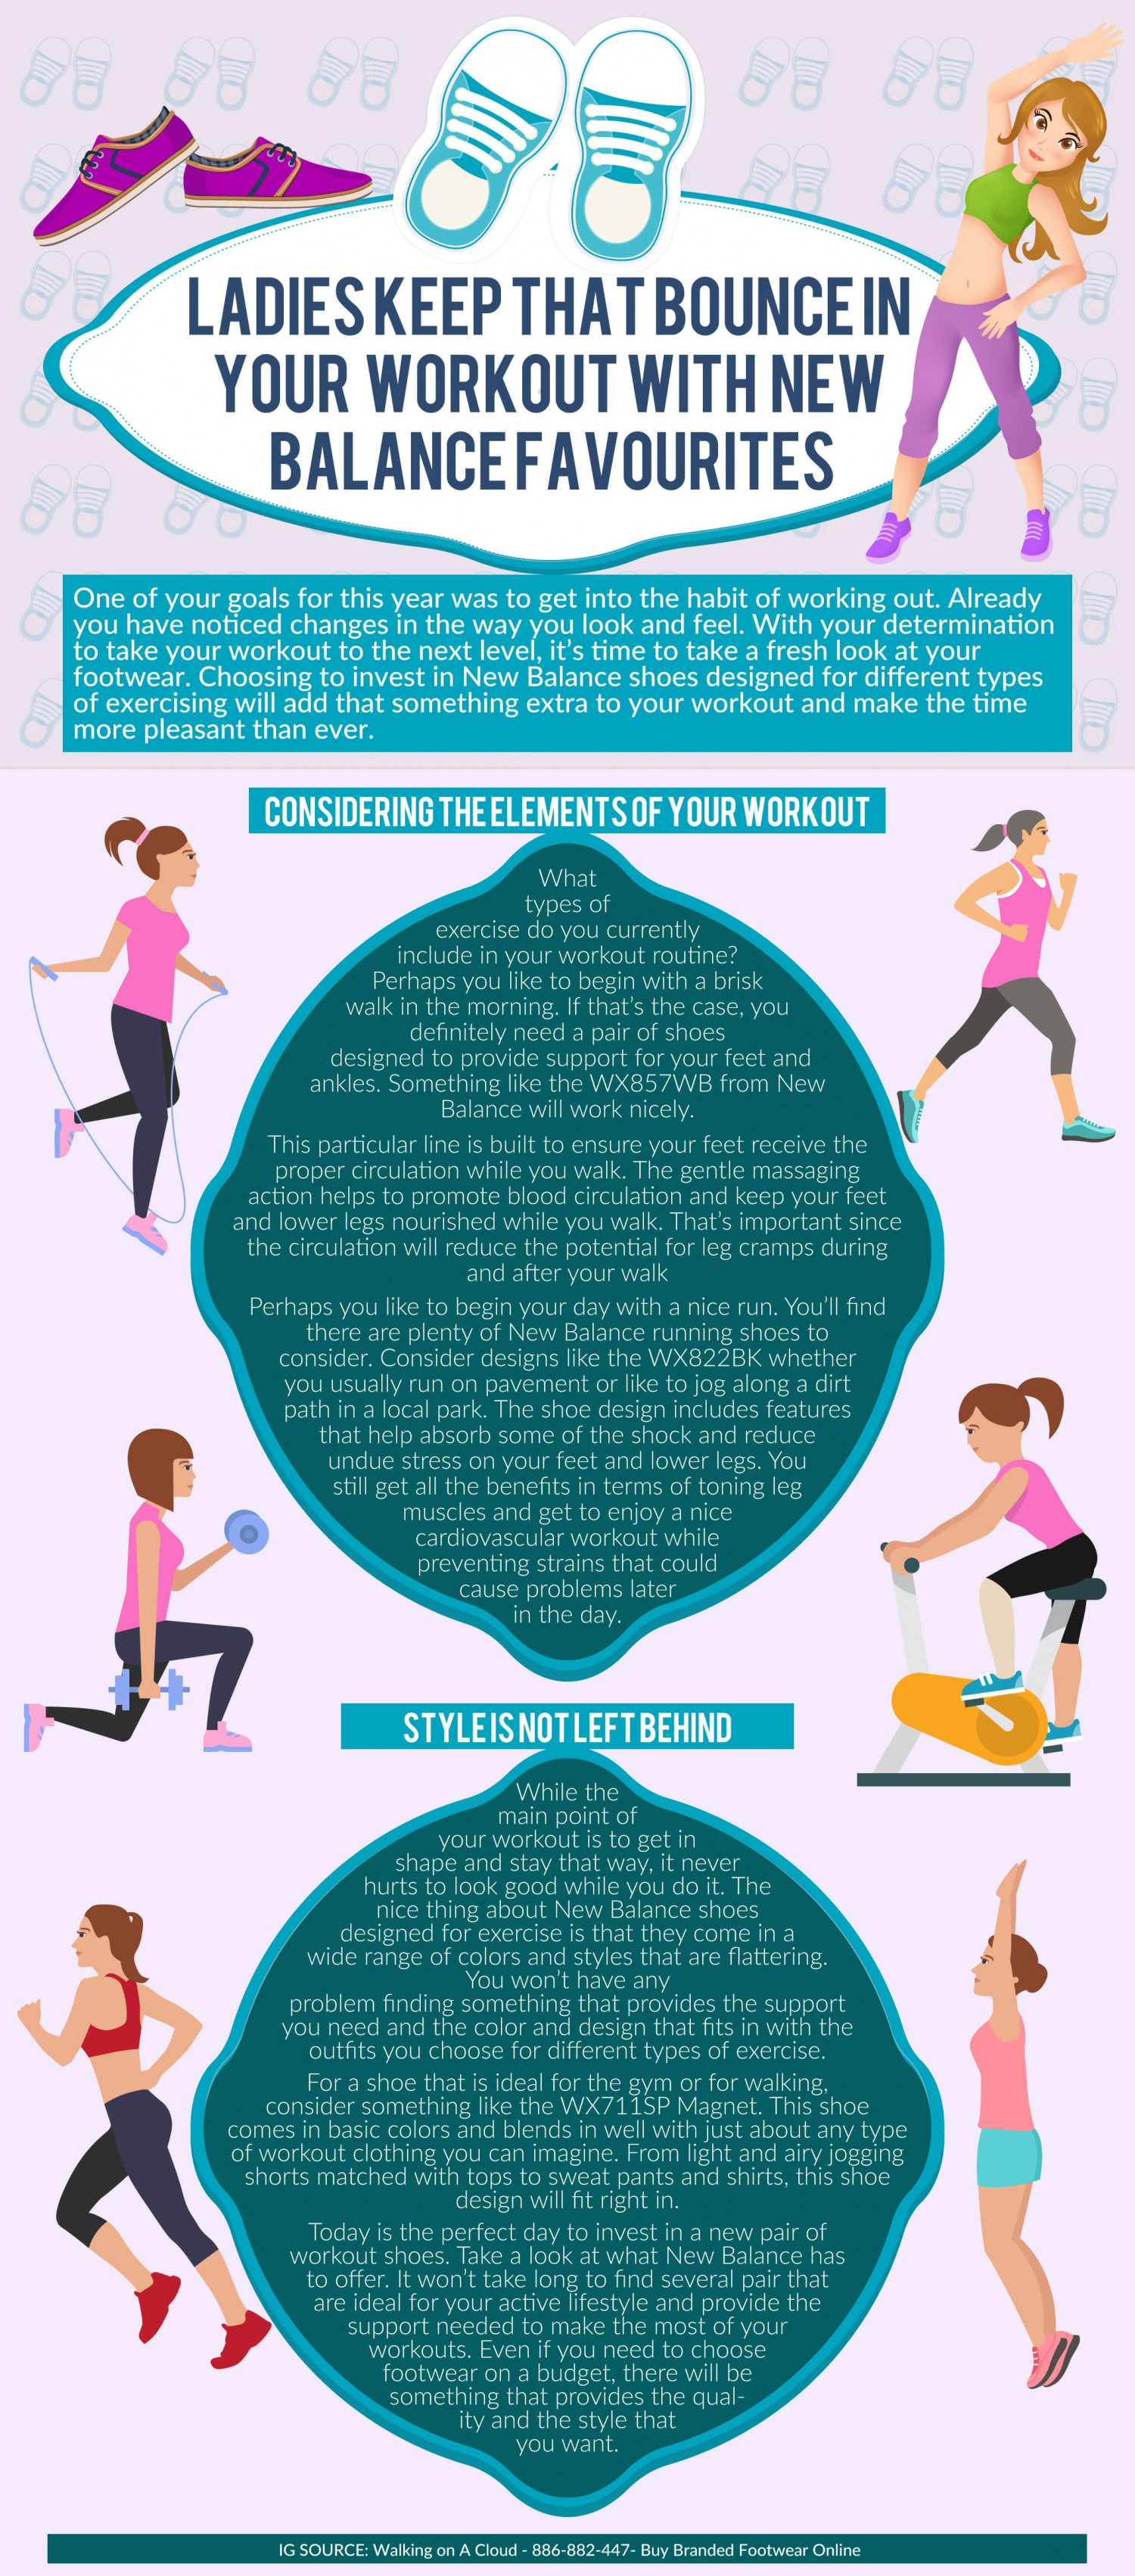 Ladies Keep That Bounce in Your Workout With These New Balance Favourites Infographic